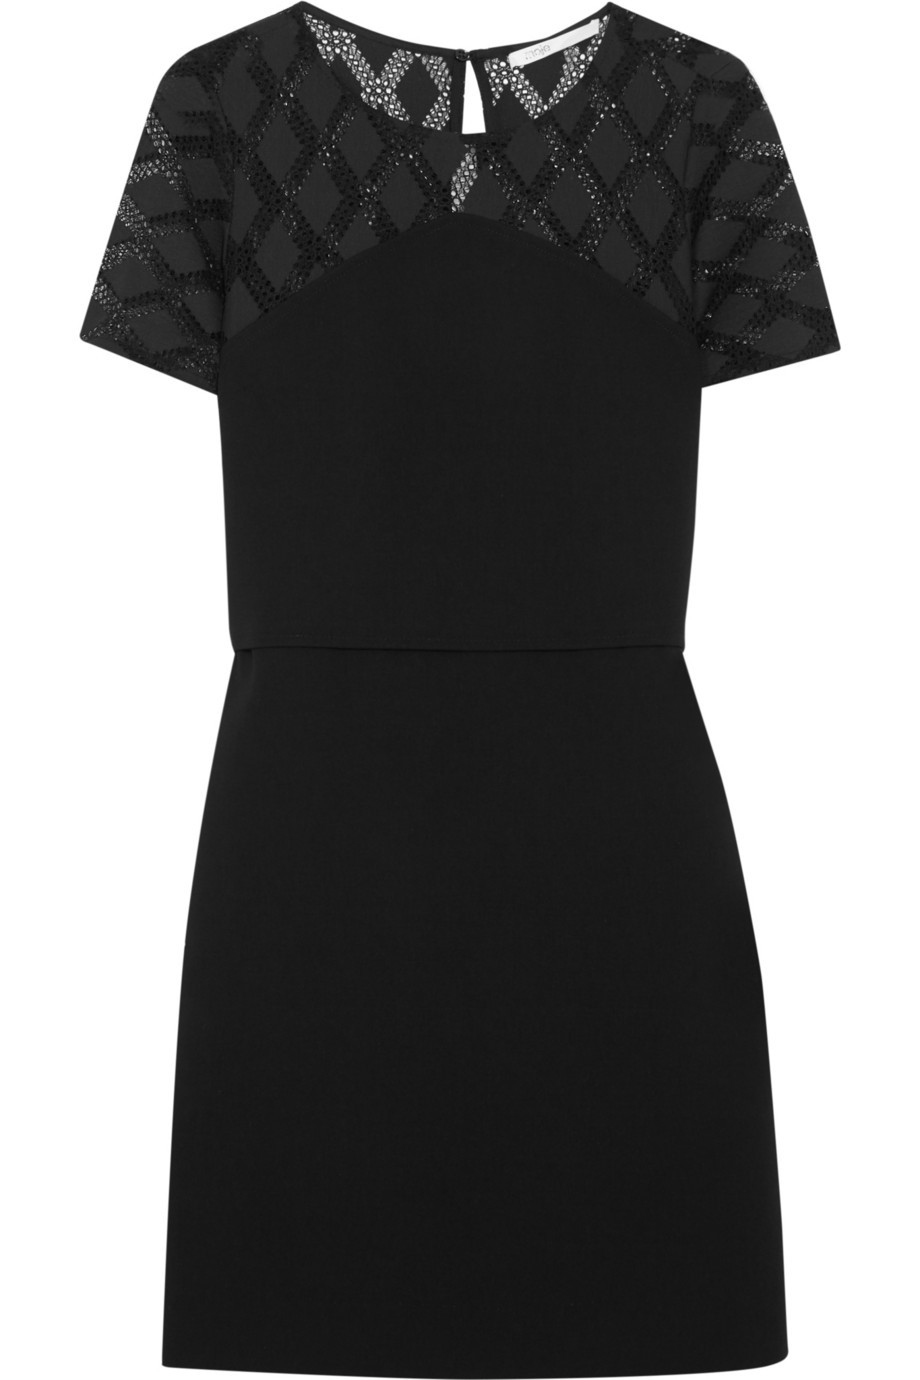 Rimini Crochet Trimmed Crepe Dress Black - style: shift; length: mid thigh; neckline: round neck; fit: tailored/fitted; pattern: plain; predominant colour: black; occasions: evening; fibres: polyester/polyamide - mix; sleeve length: short sleeve; sleeve style: standard; texture group: crepes; pattern type: fabric; embellishment: lace; season: s/s 2016; wardrobe: event; embellishment location: shoulder